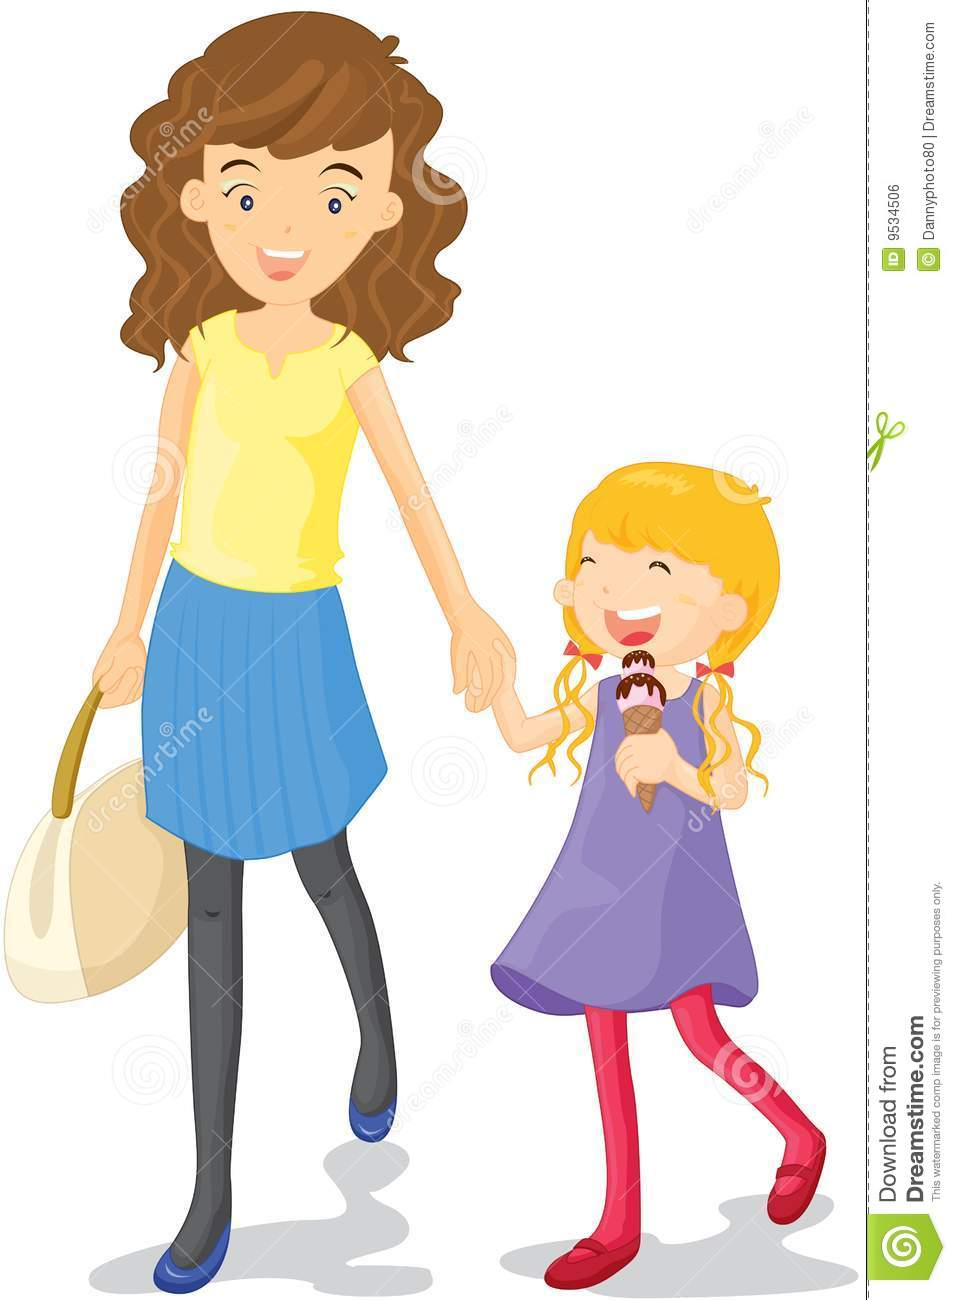 Cartoon clipart mother and daughter shoppi ng clip art freeuse download Collection of 14 free Mother clipart mom daughter shopping aztec ... clip art freeuse download